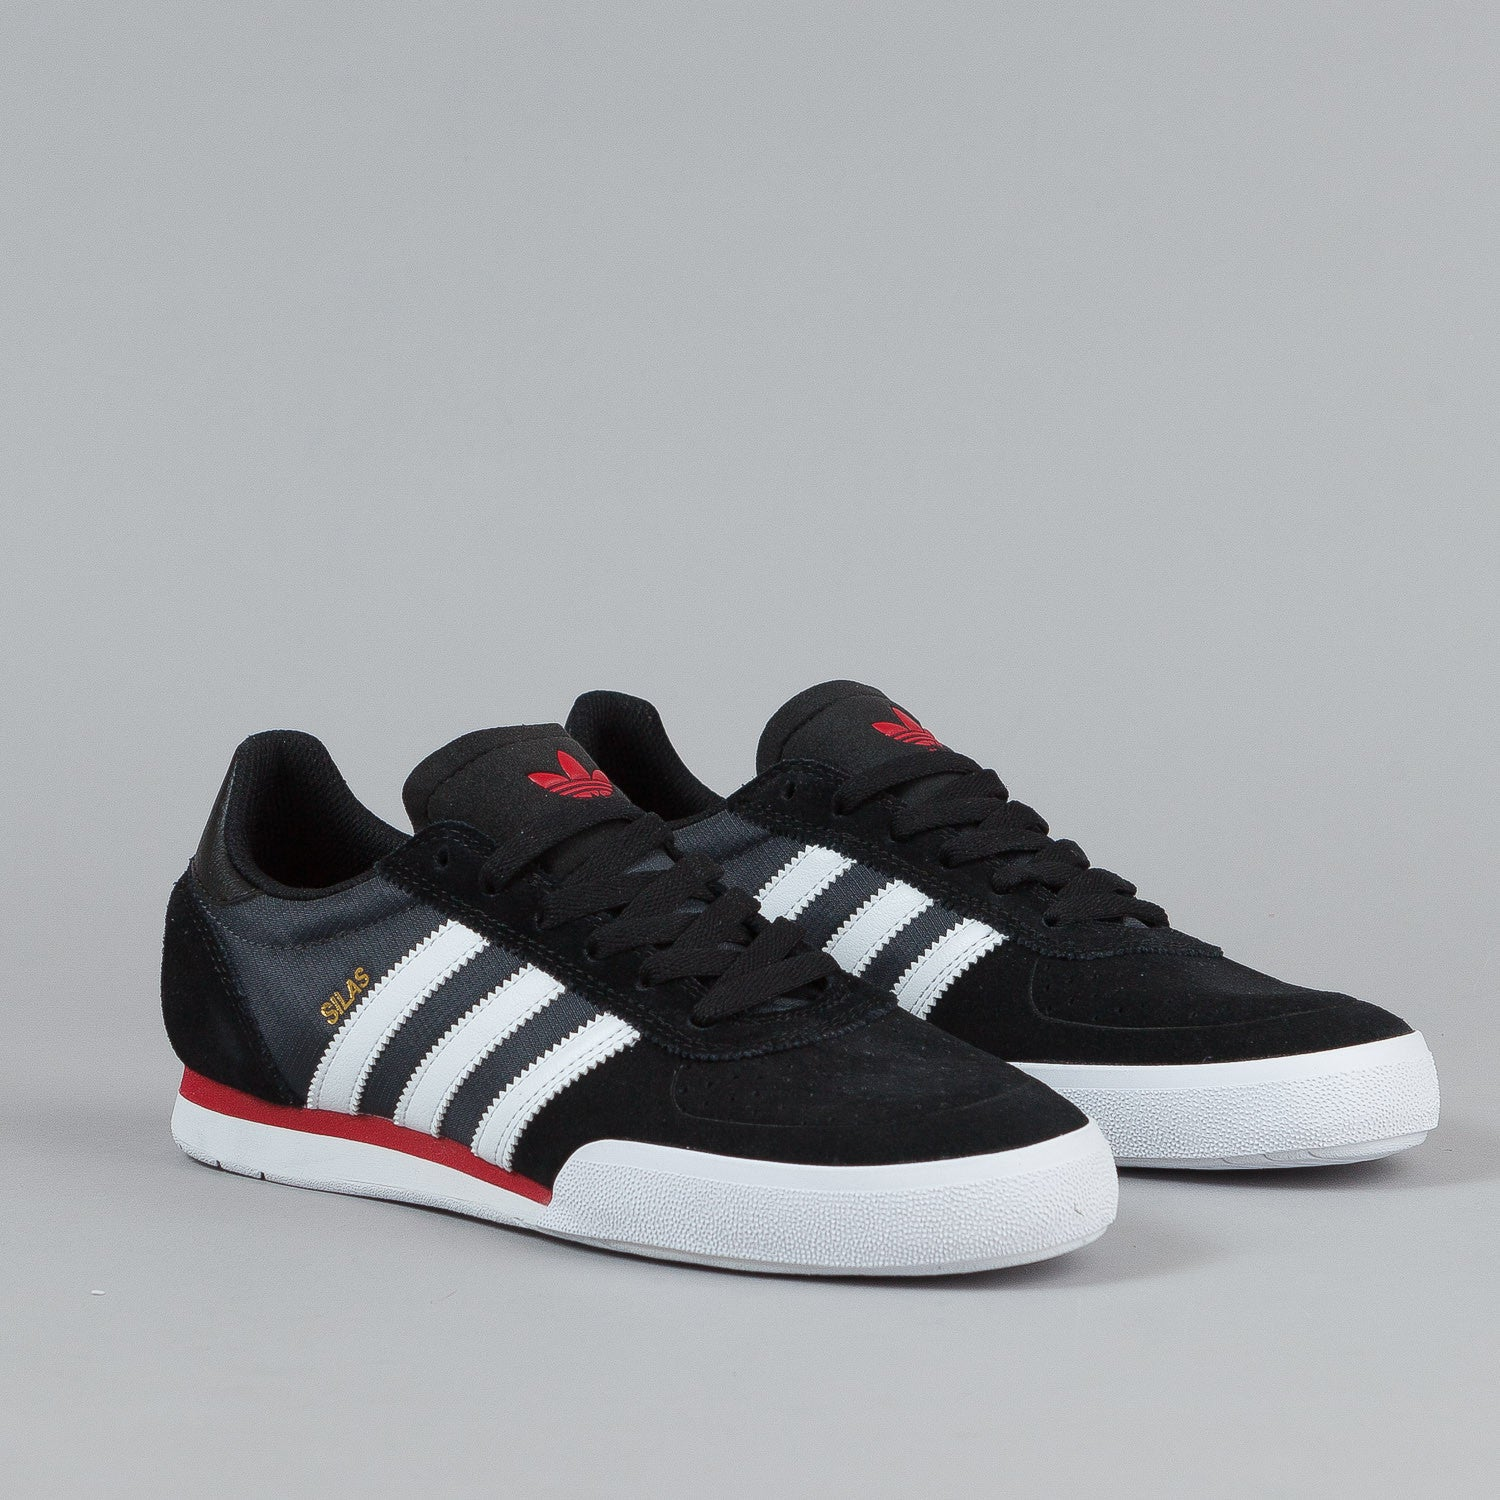 Adidas Silas SLR Core Black / FTW White / Power Red